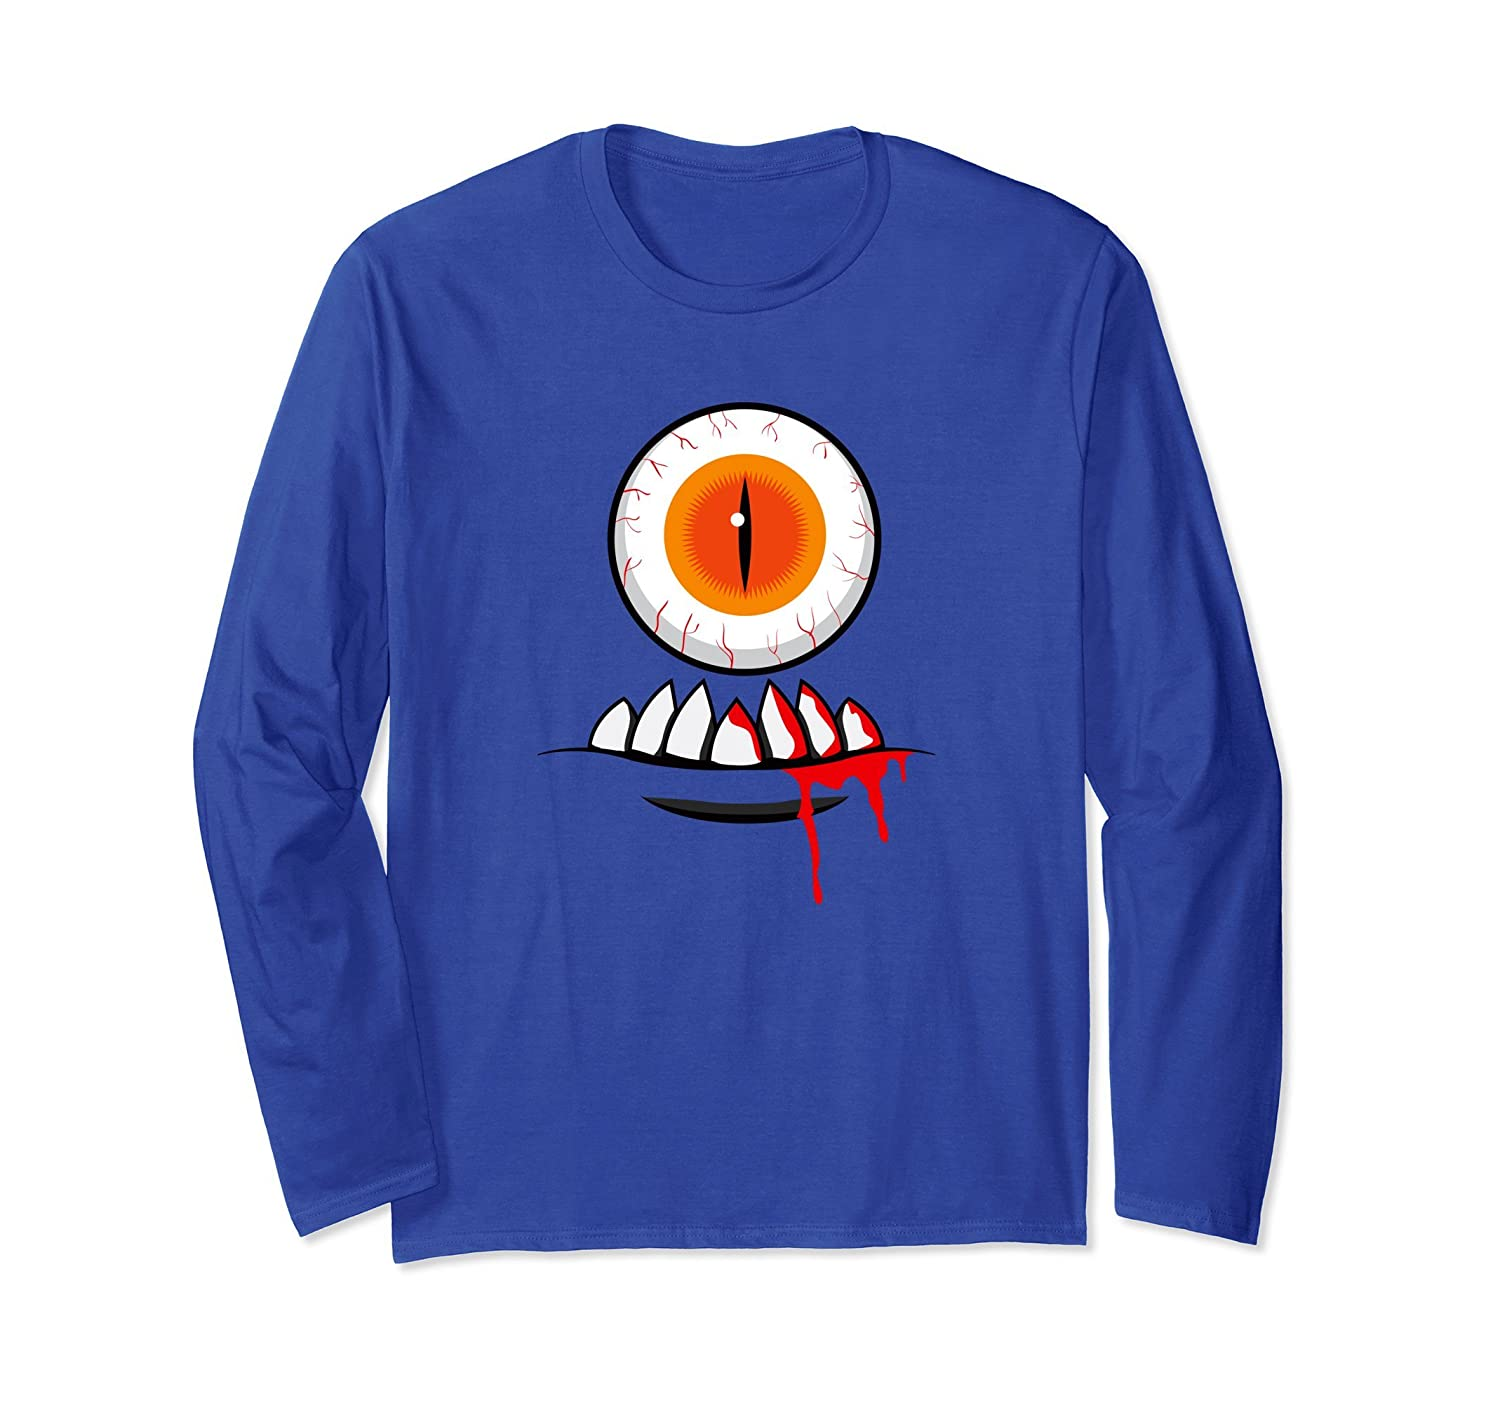 FUNNY HALLOWEEN LONG SLEEVE SHIRT - Cyclops Monster Costume-ANZ